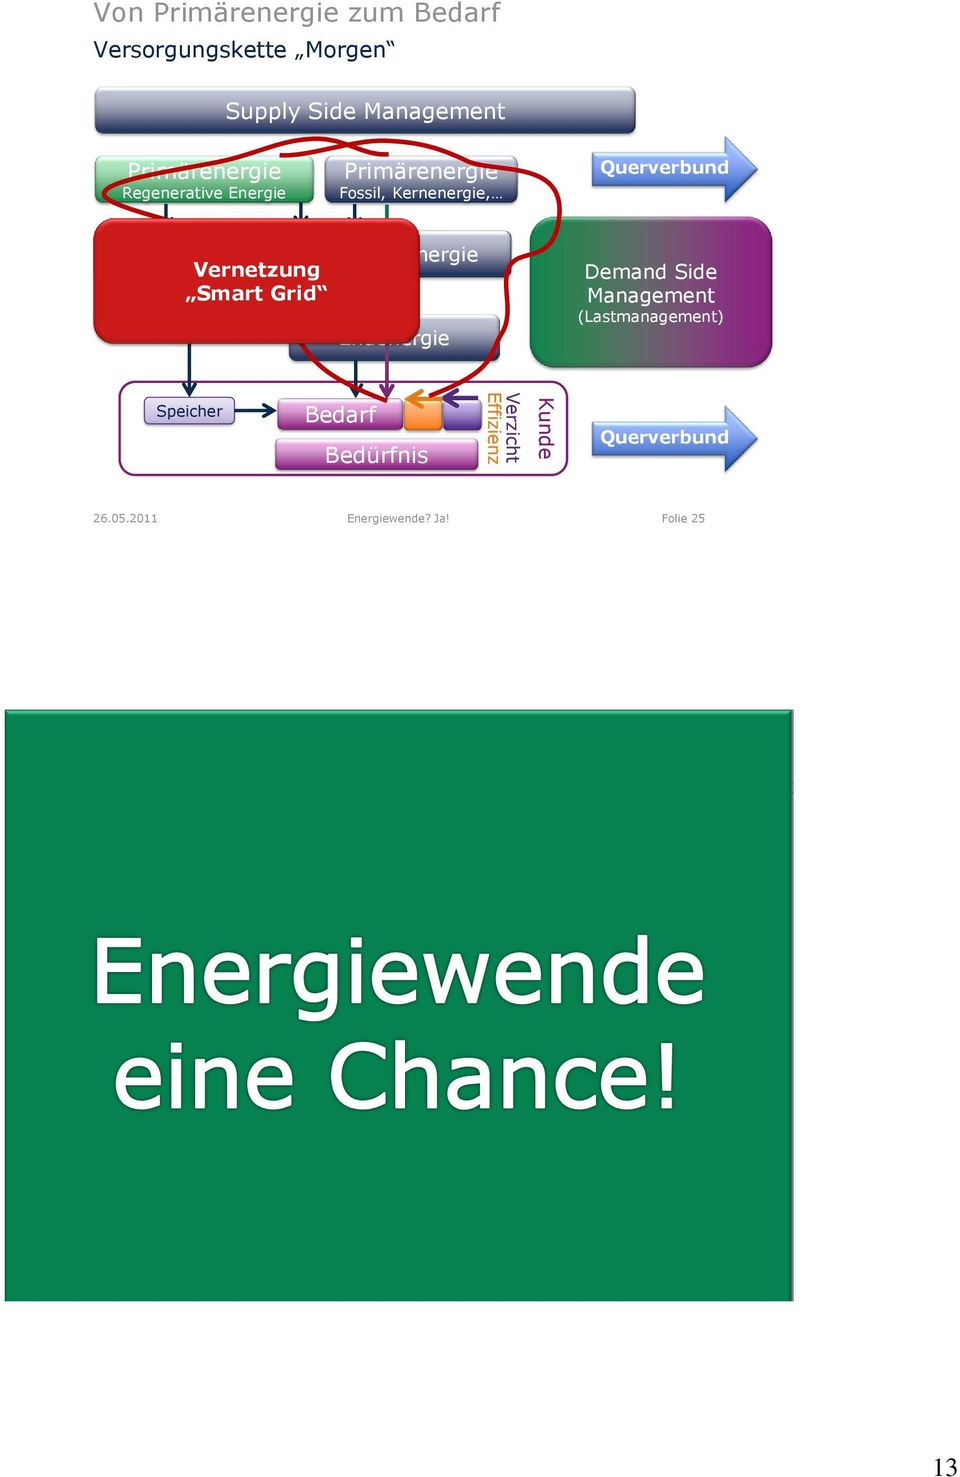 Vernetzung Smart Grid Endenergie Demand Side Management (Lastmanagement) Speicher Bedarf